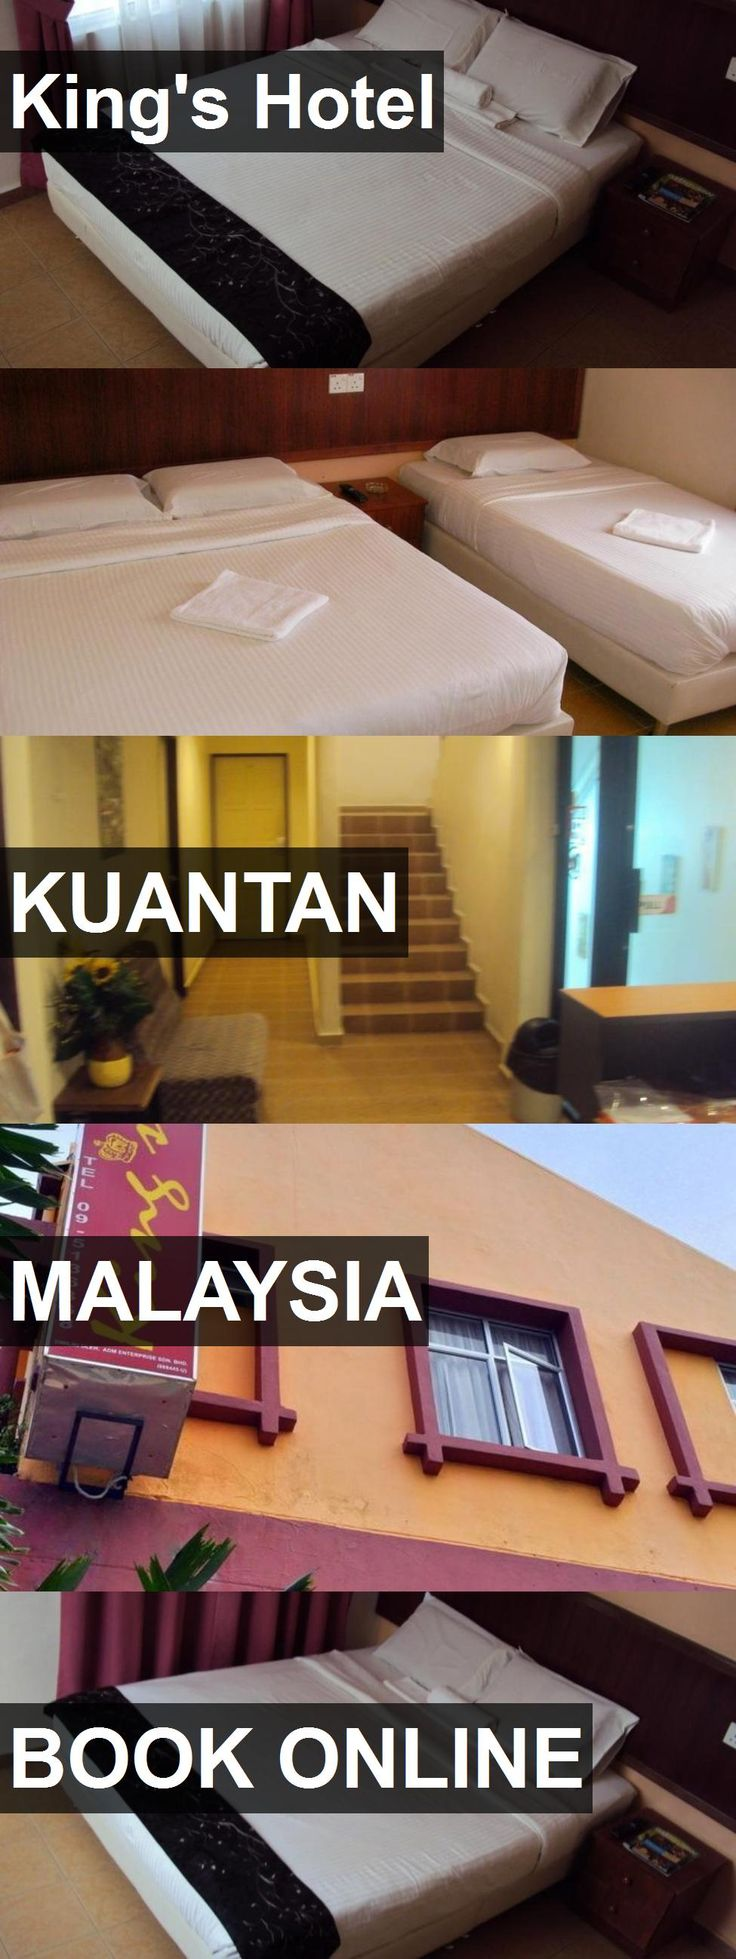 King's Hotel in Kuantan, Malaysia. For more information, photos, reviews and best prices please follow the link. #Malaysia #Kuantan #travel #vacation #hotel